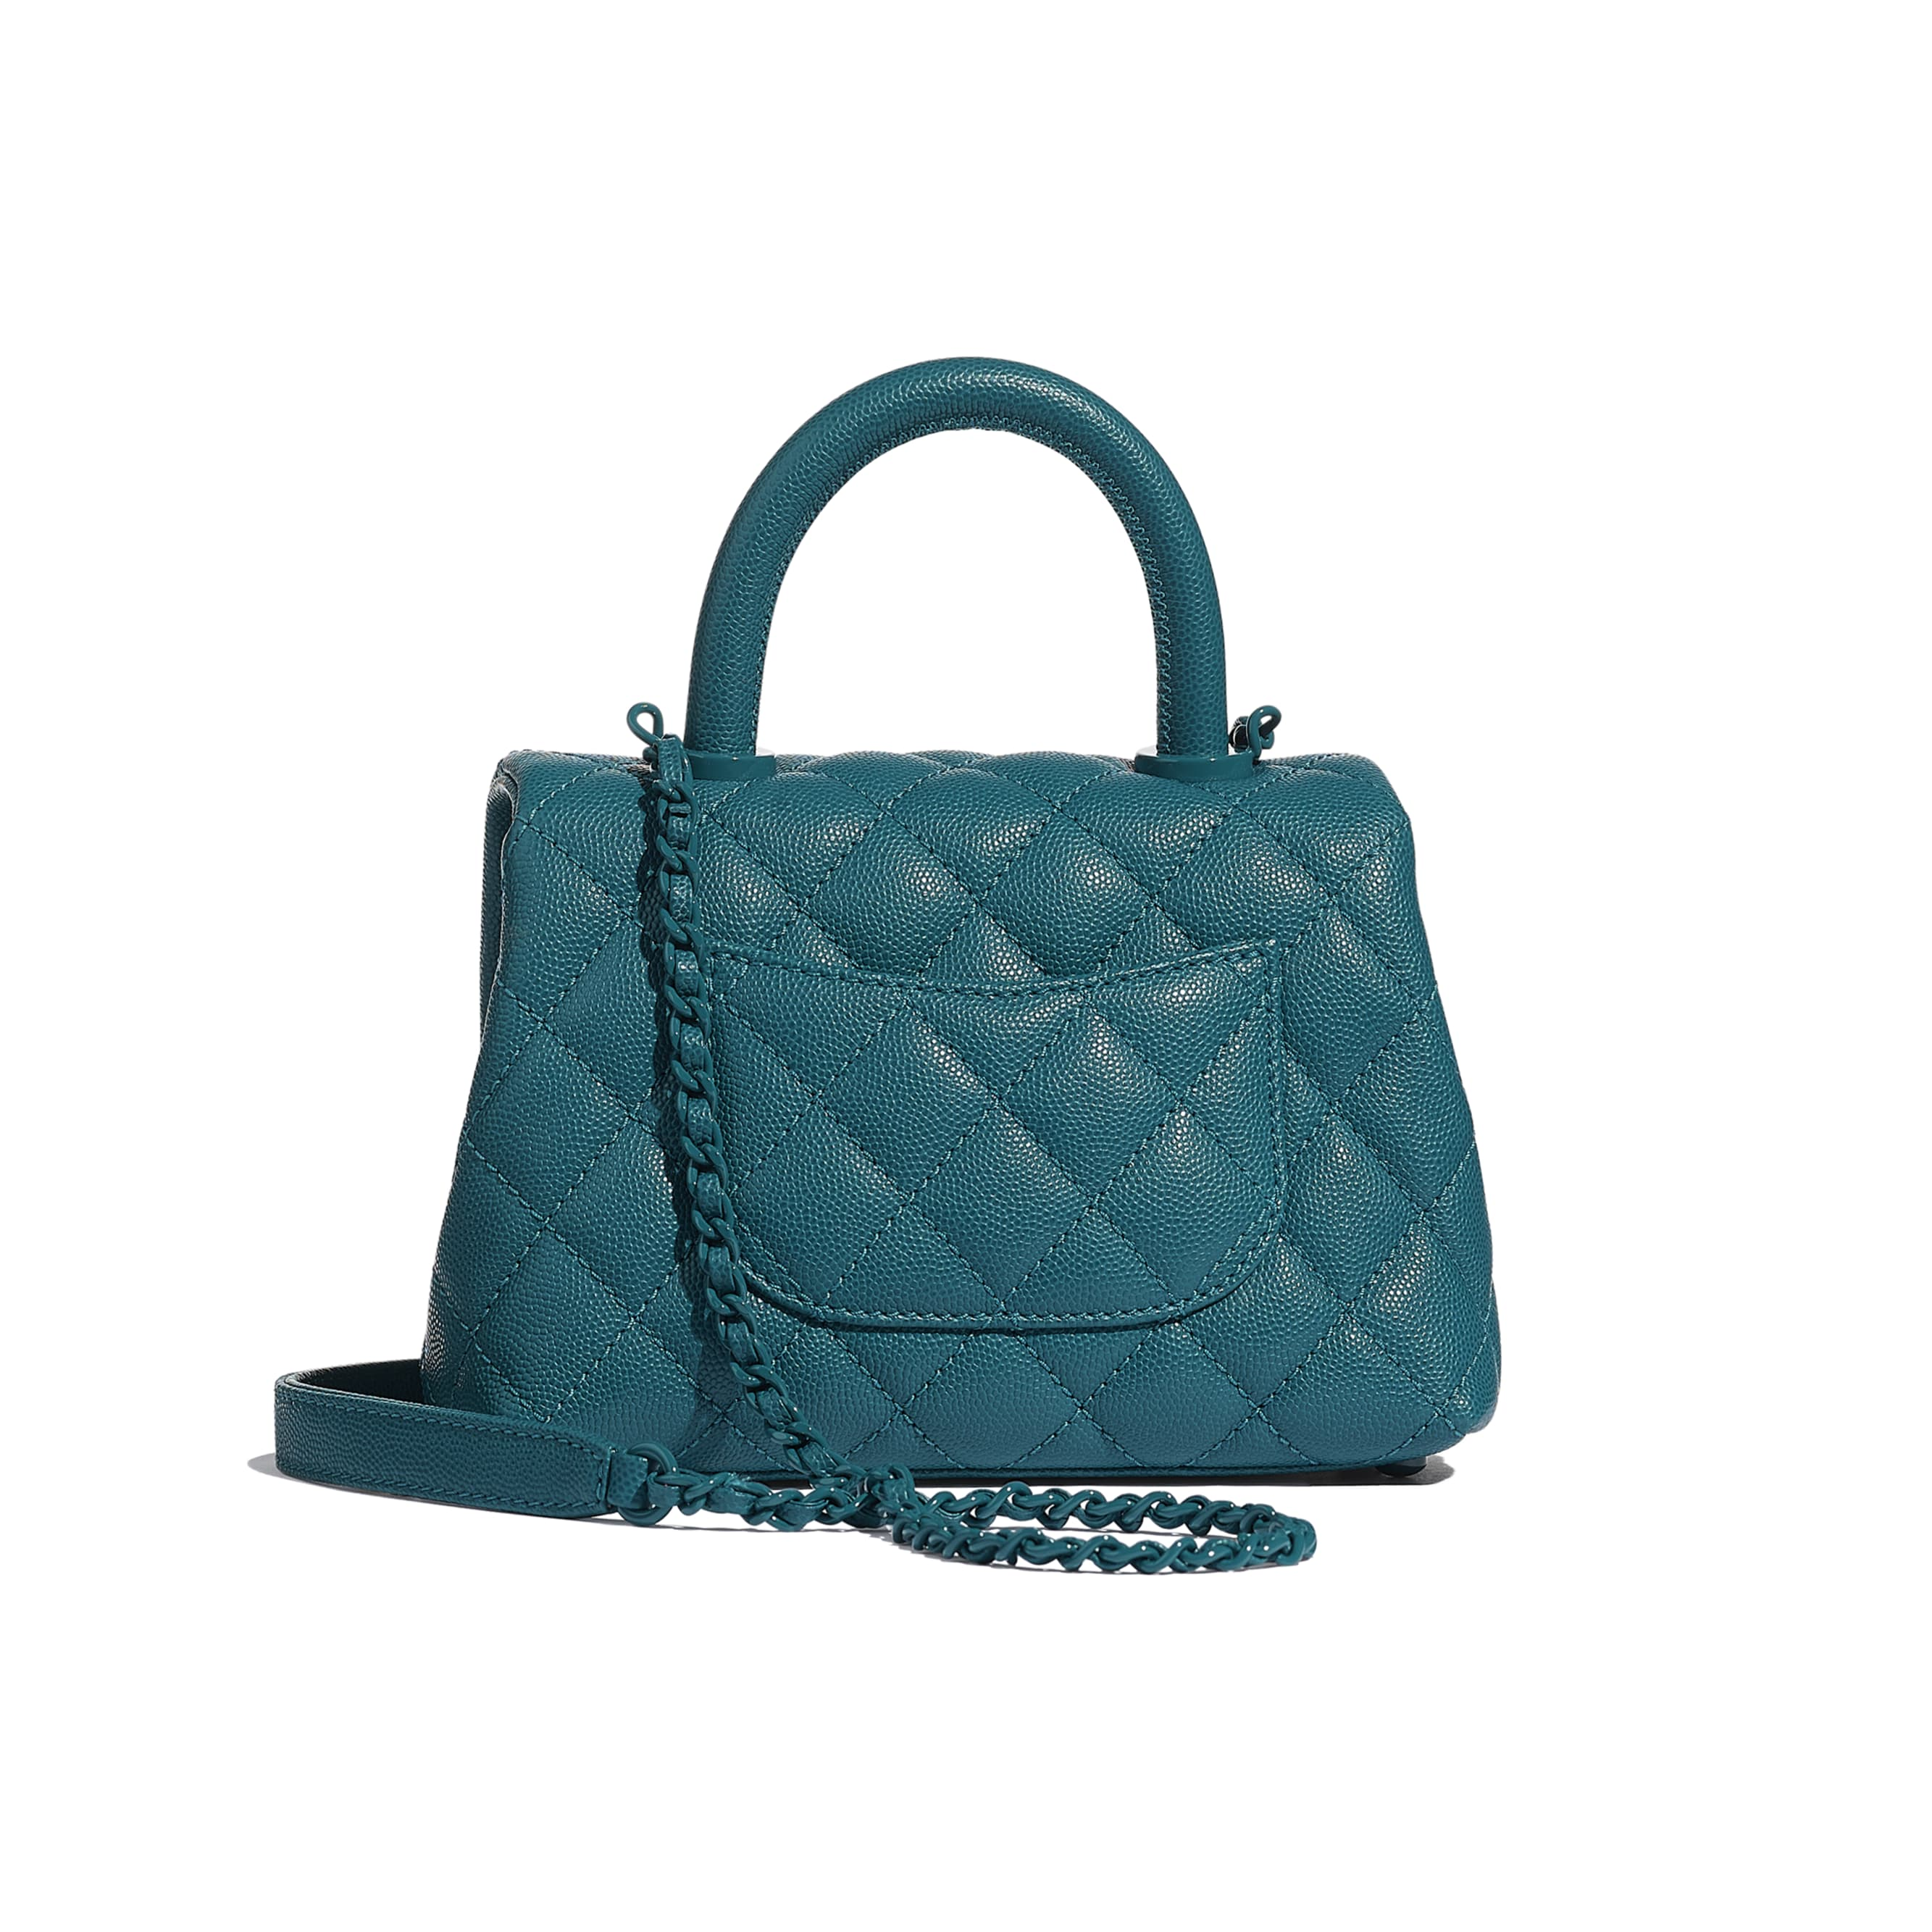 Mini Flap Bag with Top Handle - Turquoise - Grained Calfskin & Lacquered Metal - CHANEL - Vista alternativa - ver a versão em tamanho standard